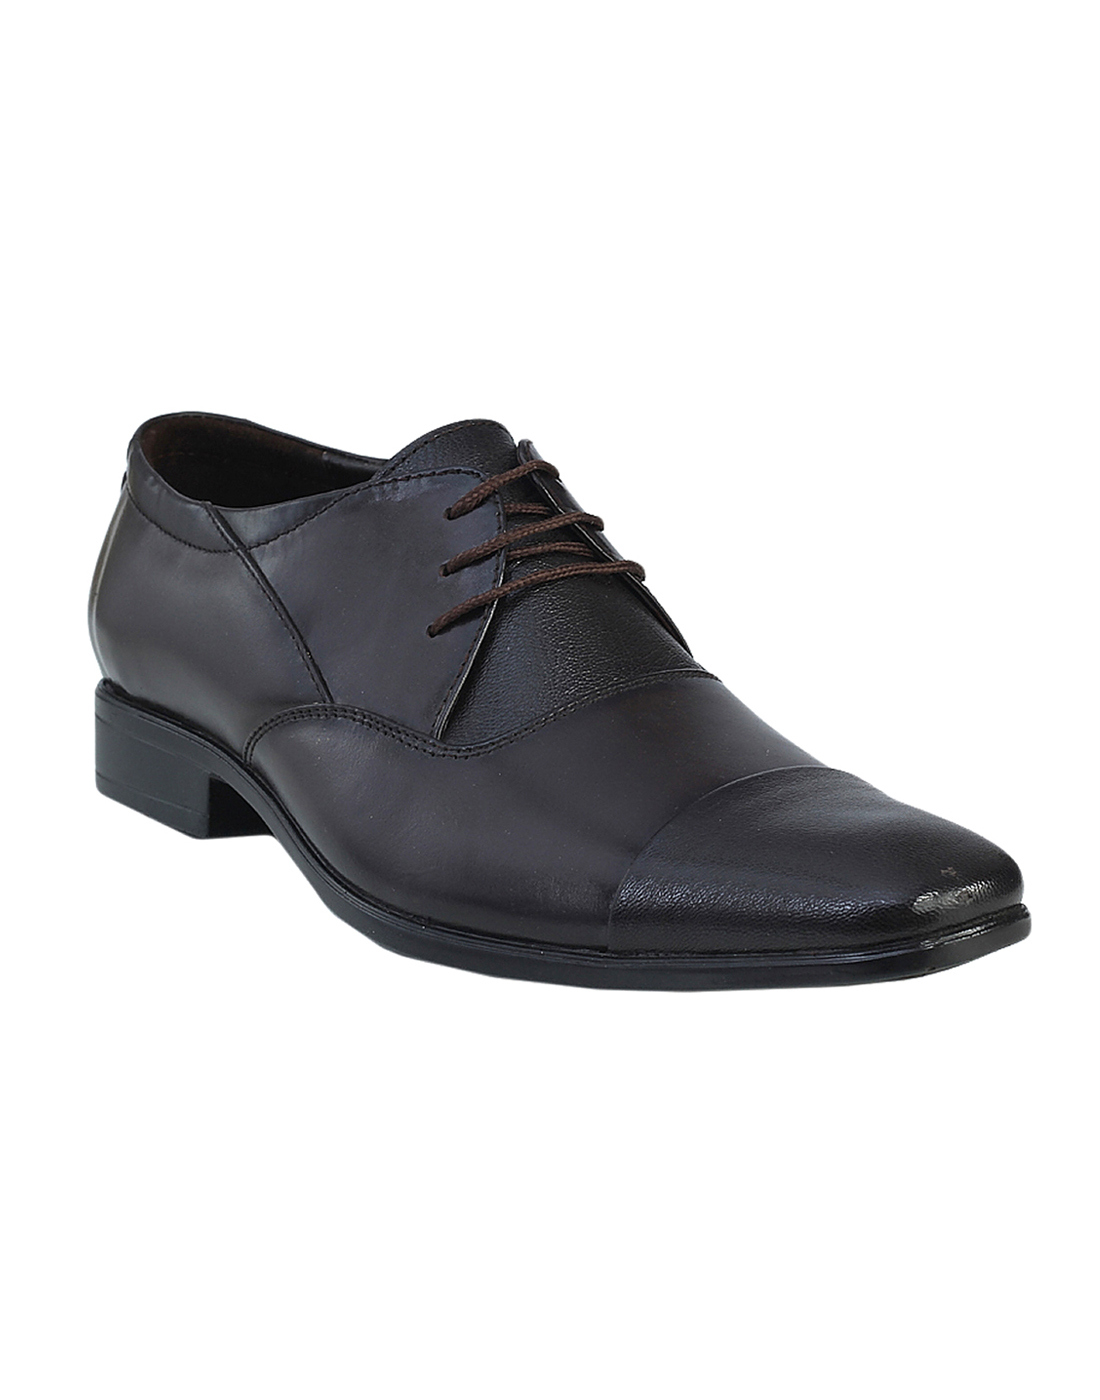 Tycoon Oxford Lace Up Shoes